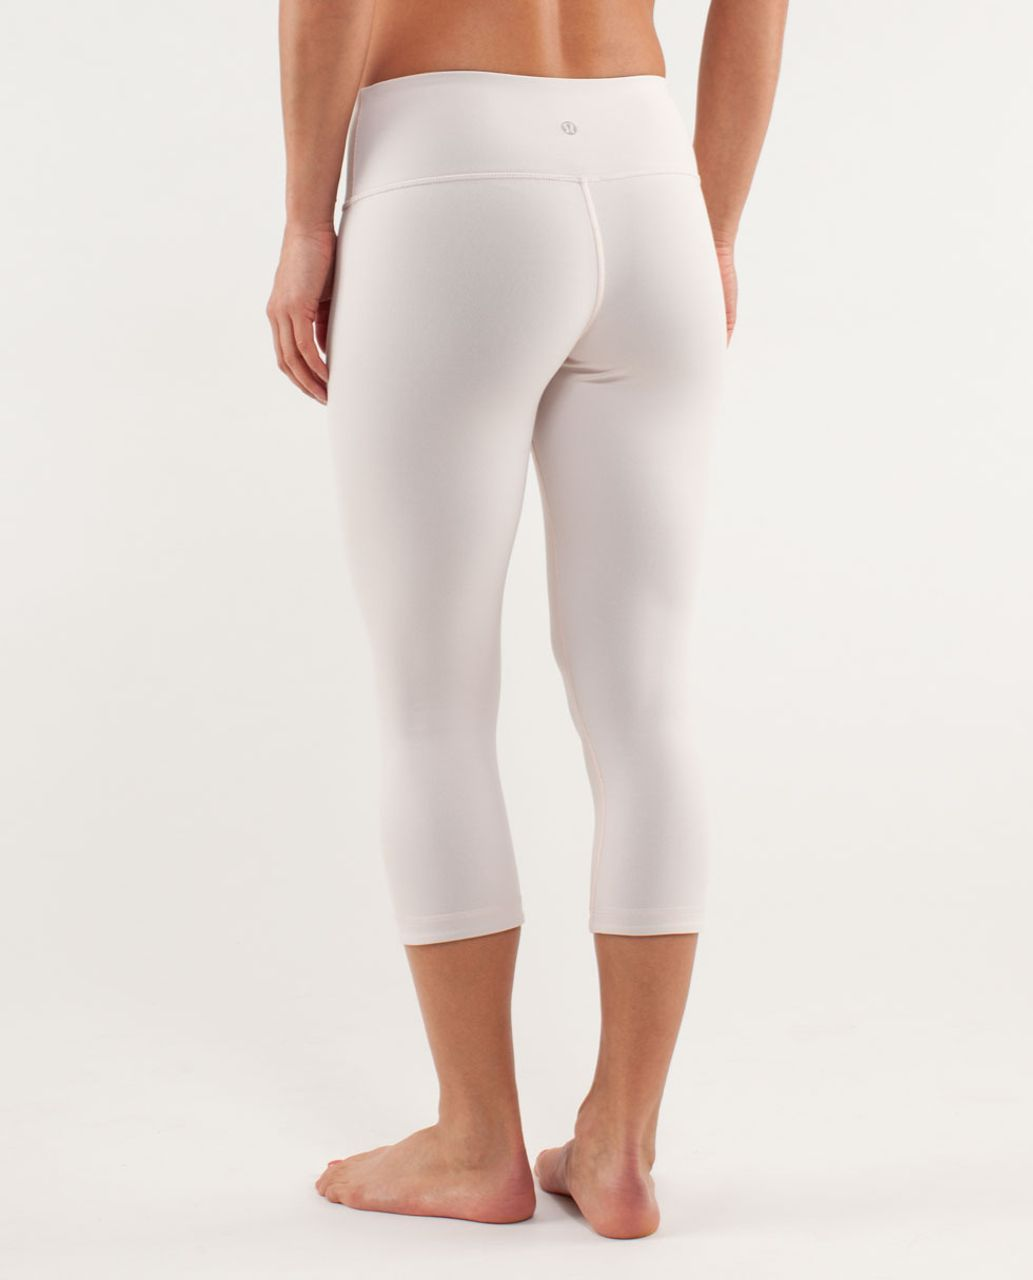 Lululemon Wunder Under Crop *Reversible - Black / Parfait Pink